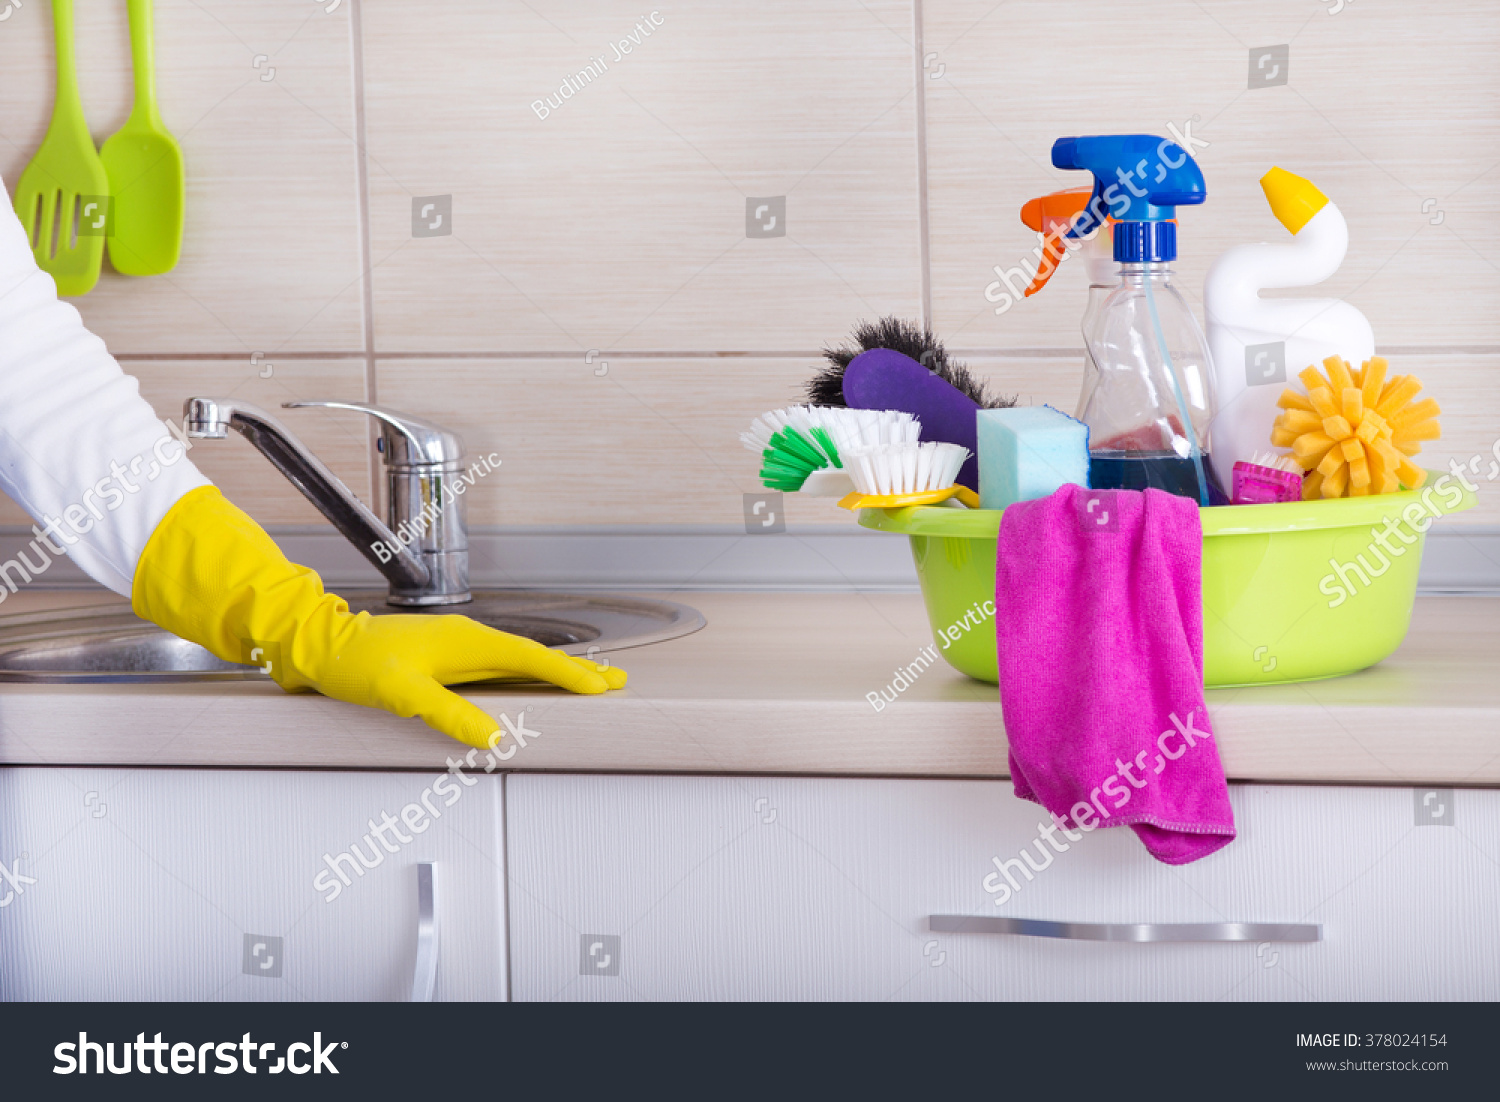 Cleaning Supplies Washbasin Standing On Cleaned Stock Photo - Bathroom cleaning lady